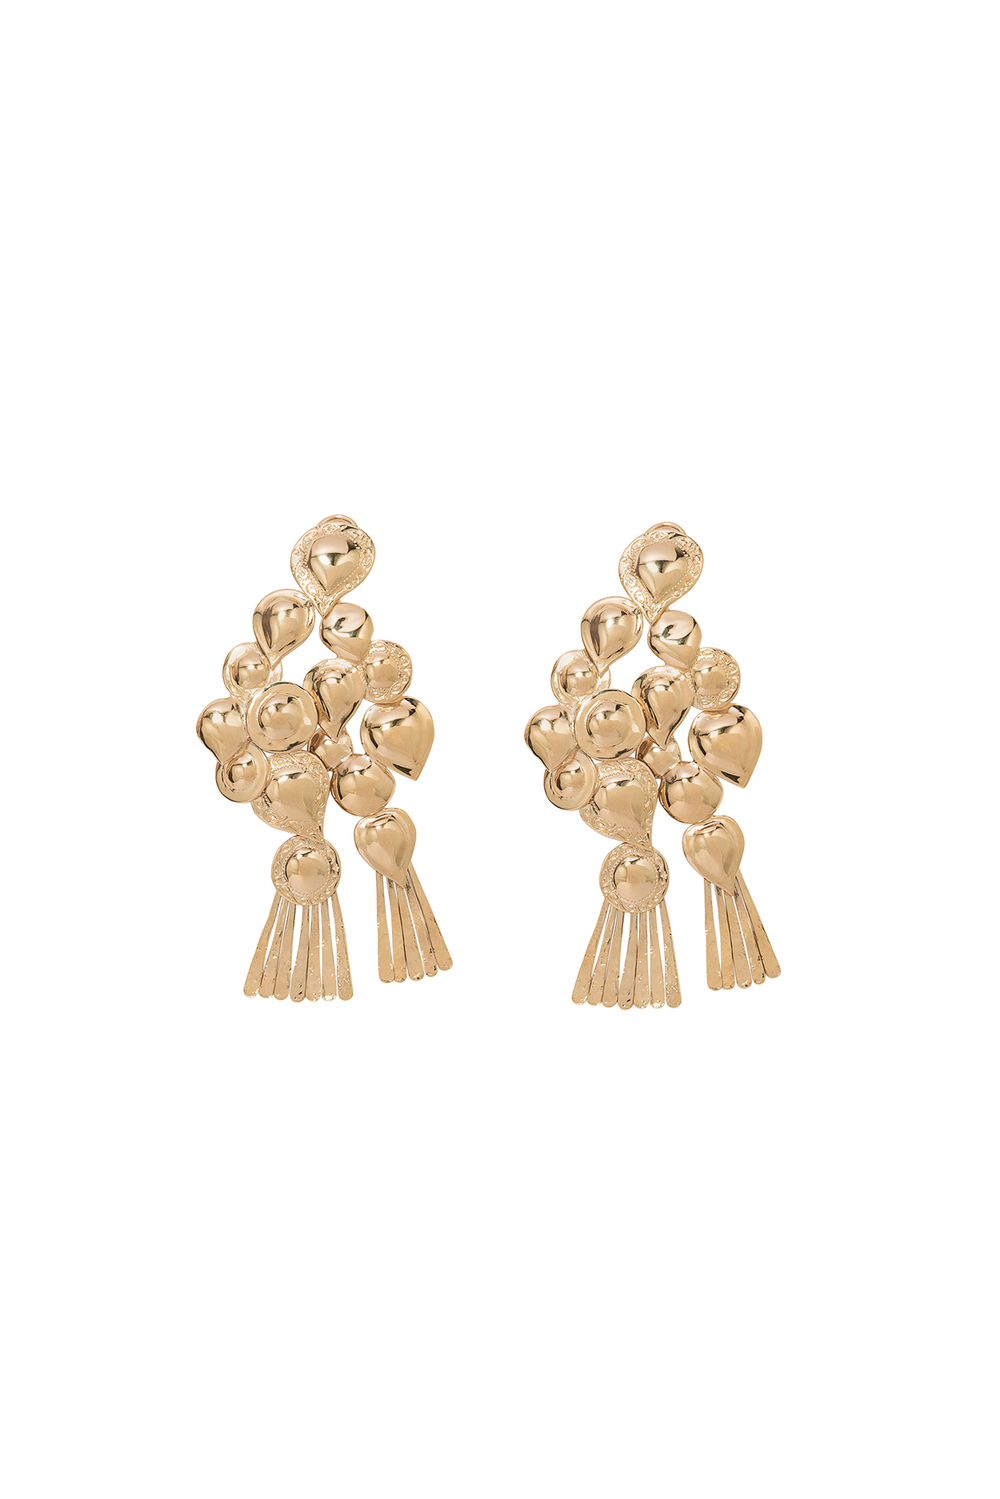 02-05-statement-earrings.jpg